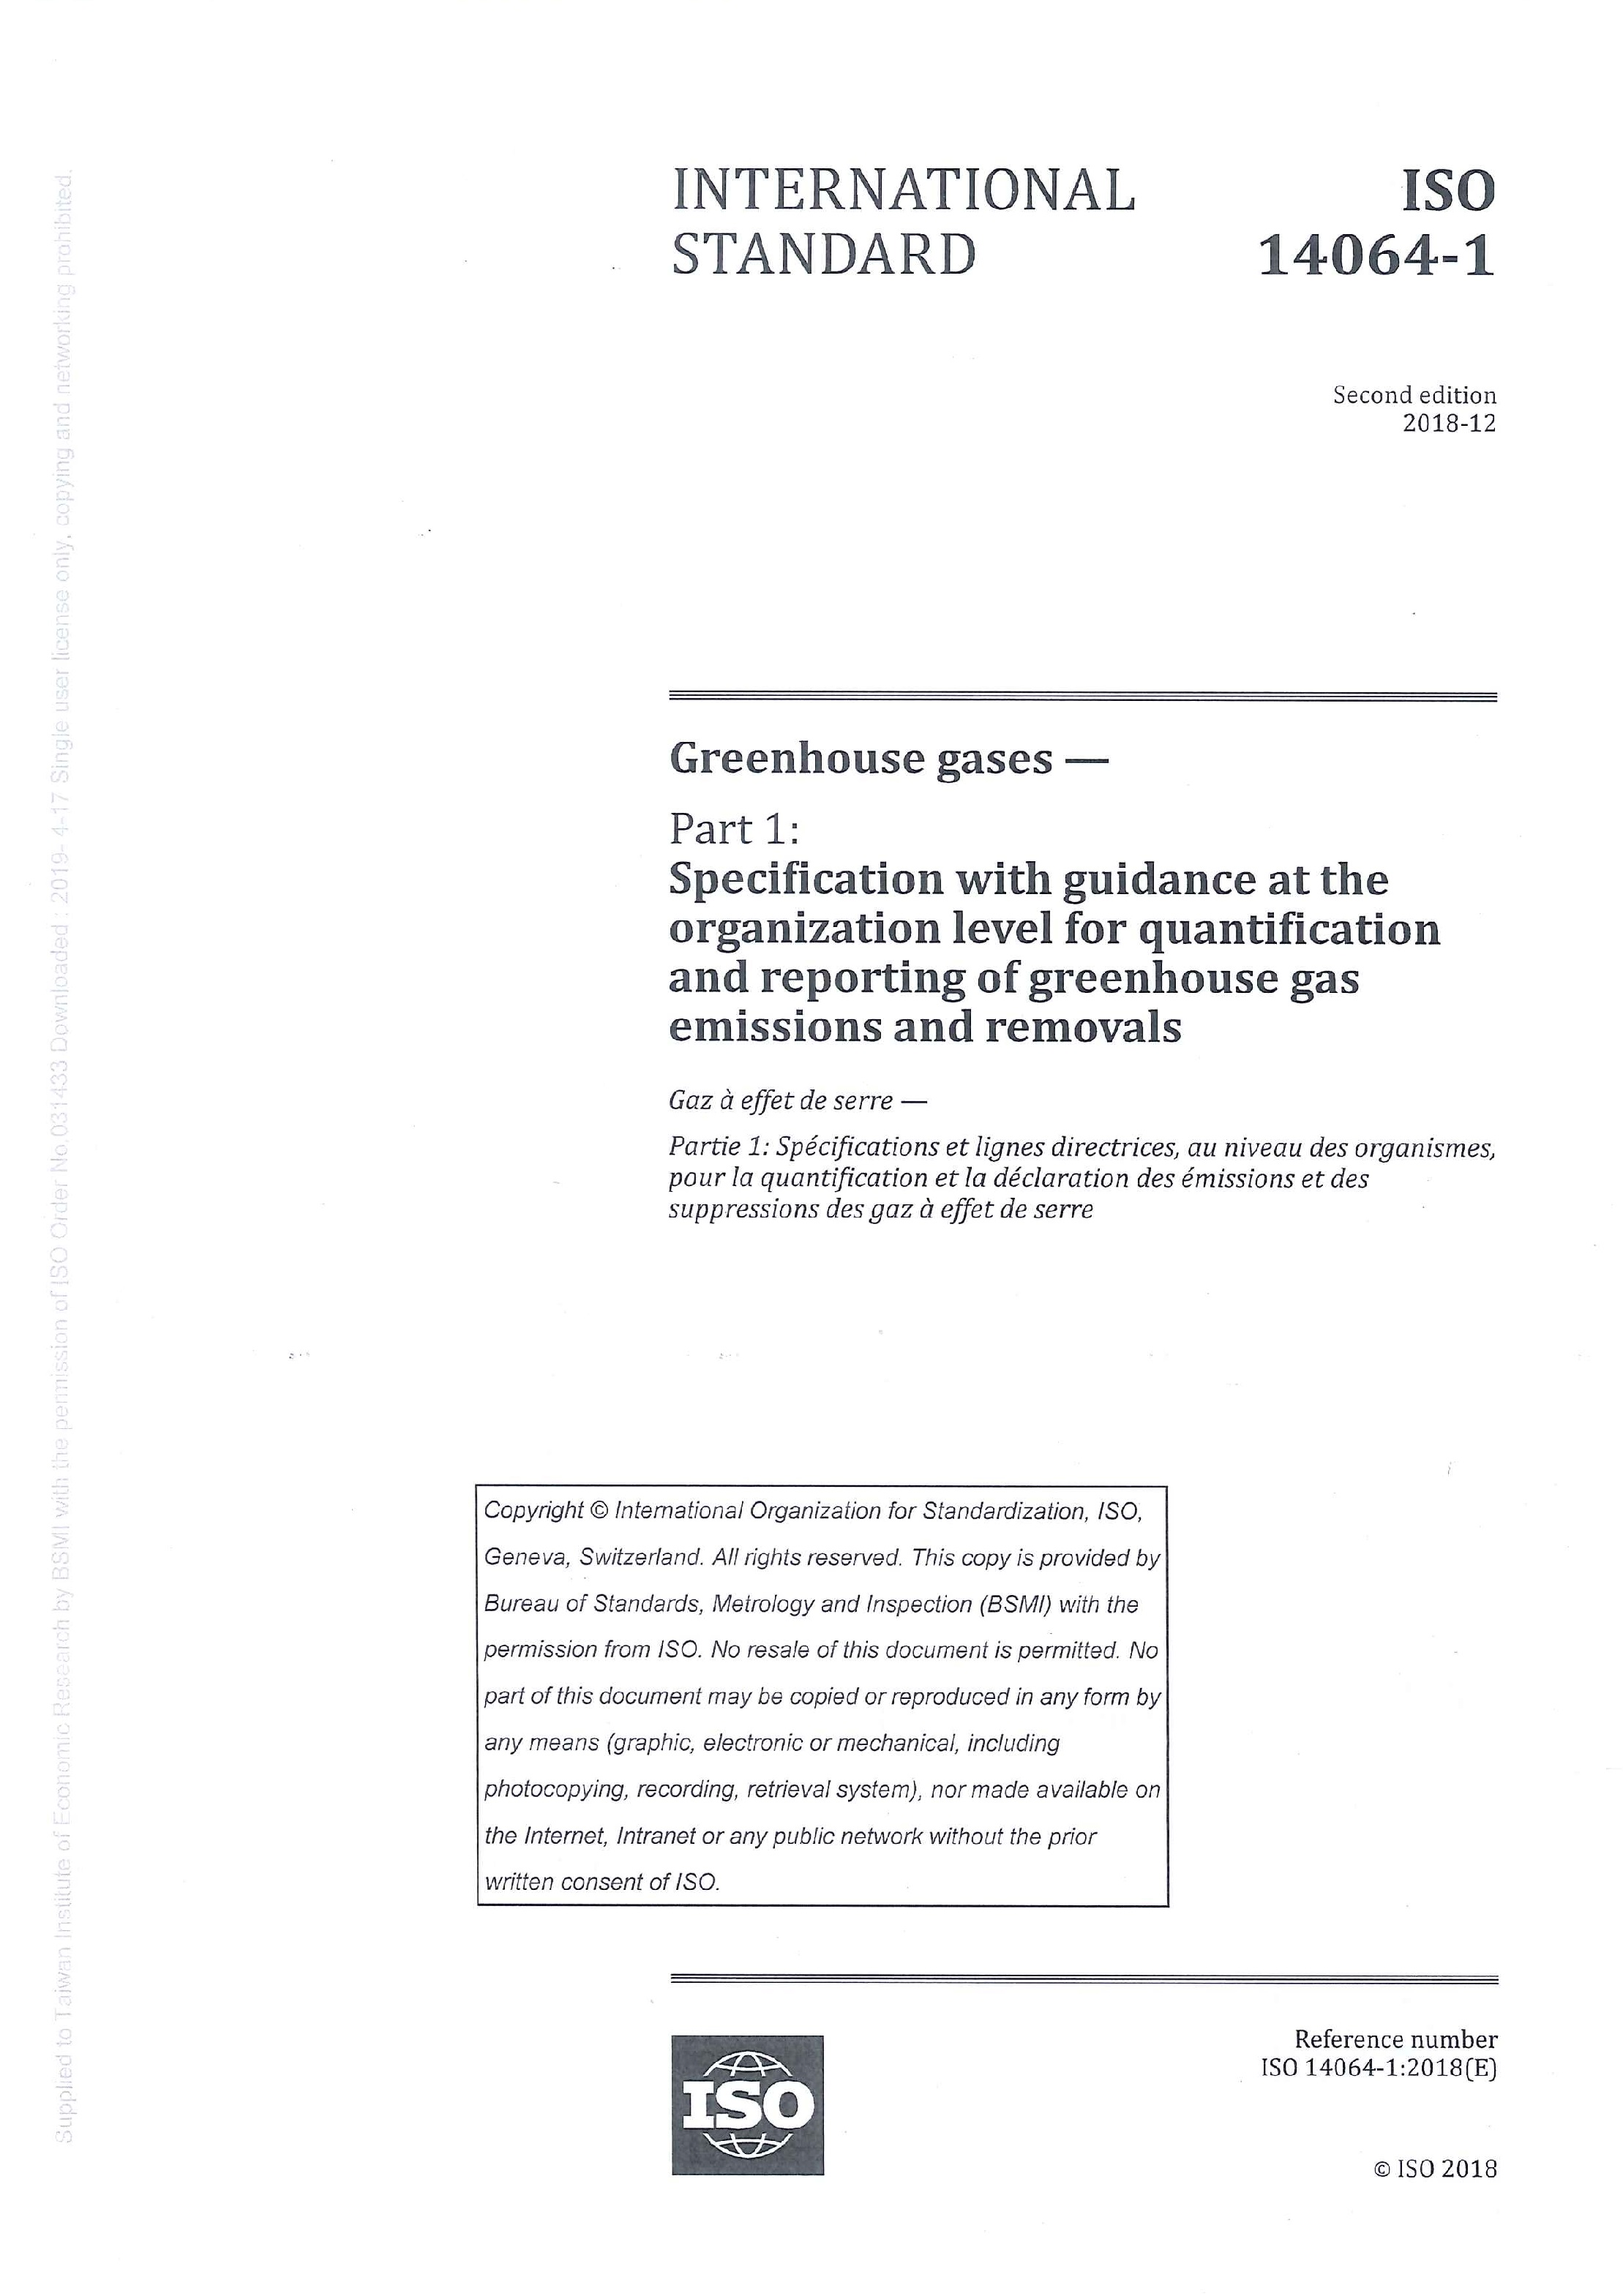 Greenhouse gases [e-book].Specification with guidance at the organization level for quantification and reporting of greenhouse gas emissions and removals.Part 1